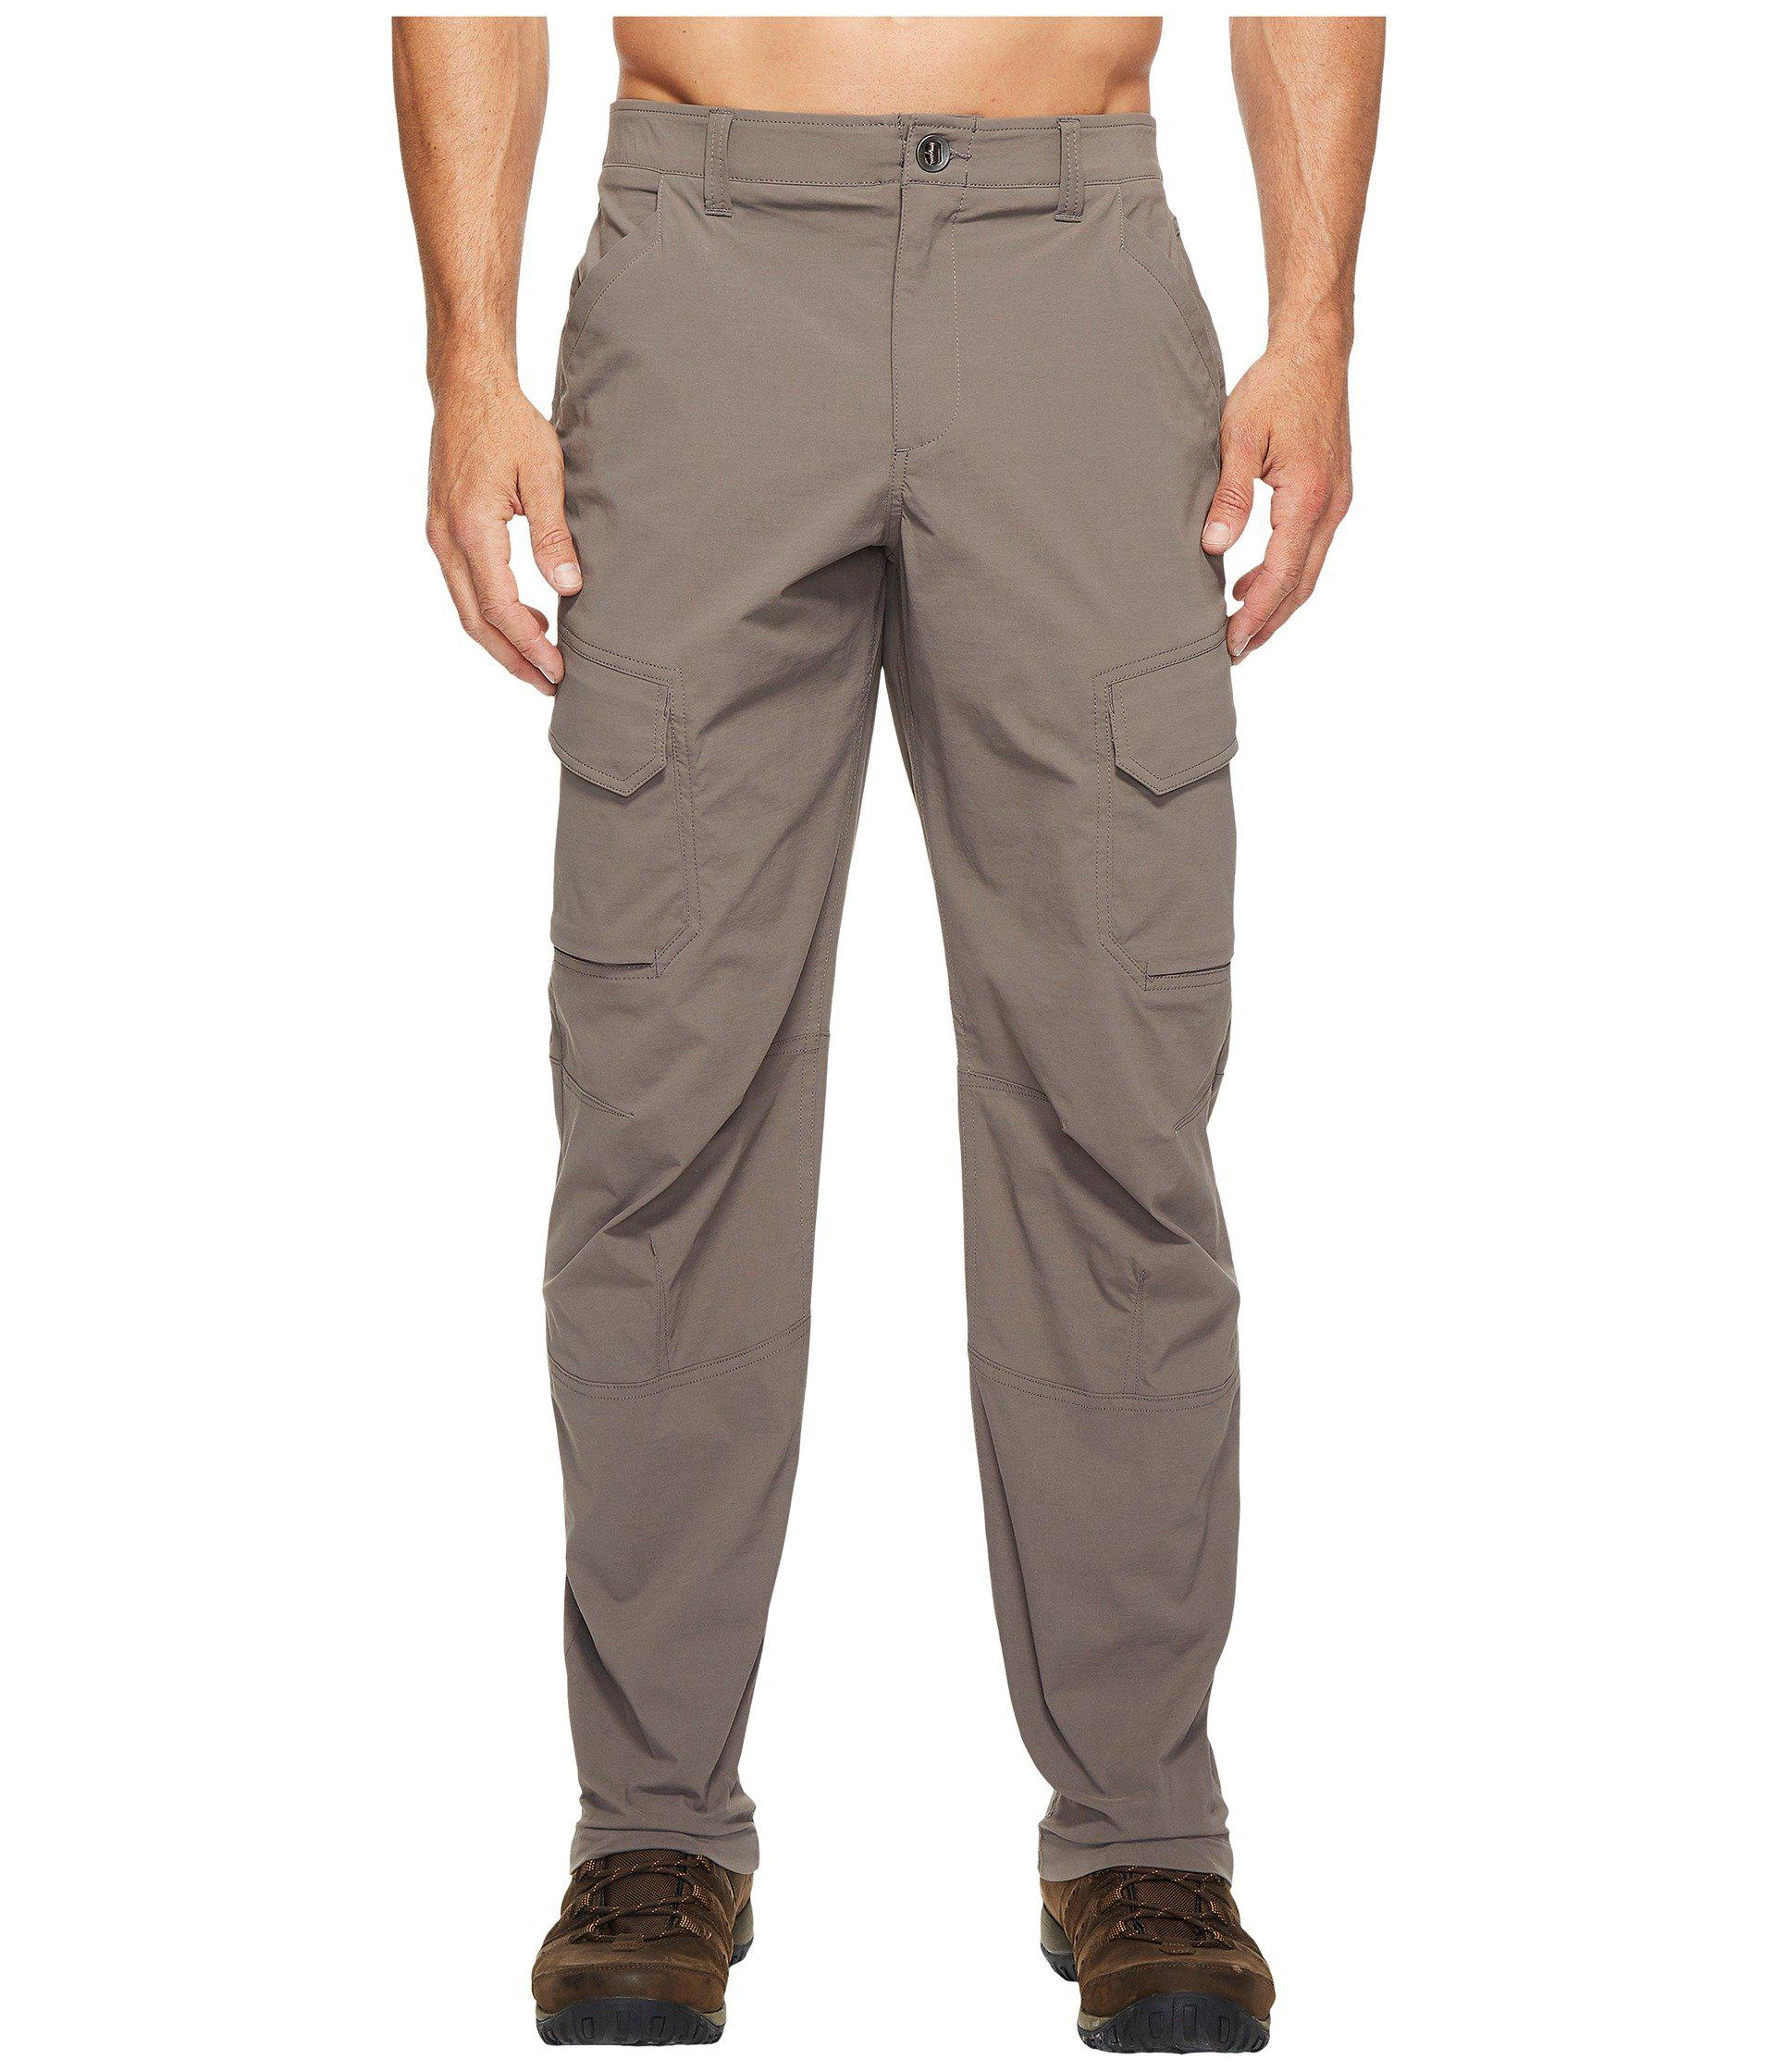 98edb21a86e63 Under Armour Ua Fish Hunter Cargo Pants in Brown for Men - Lyst